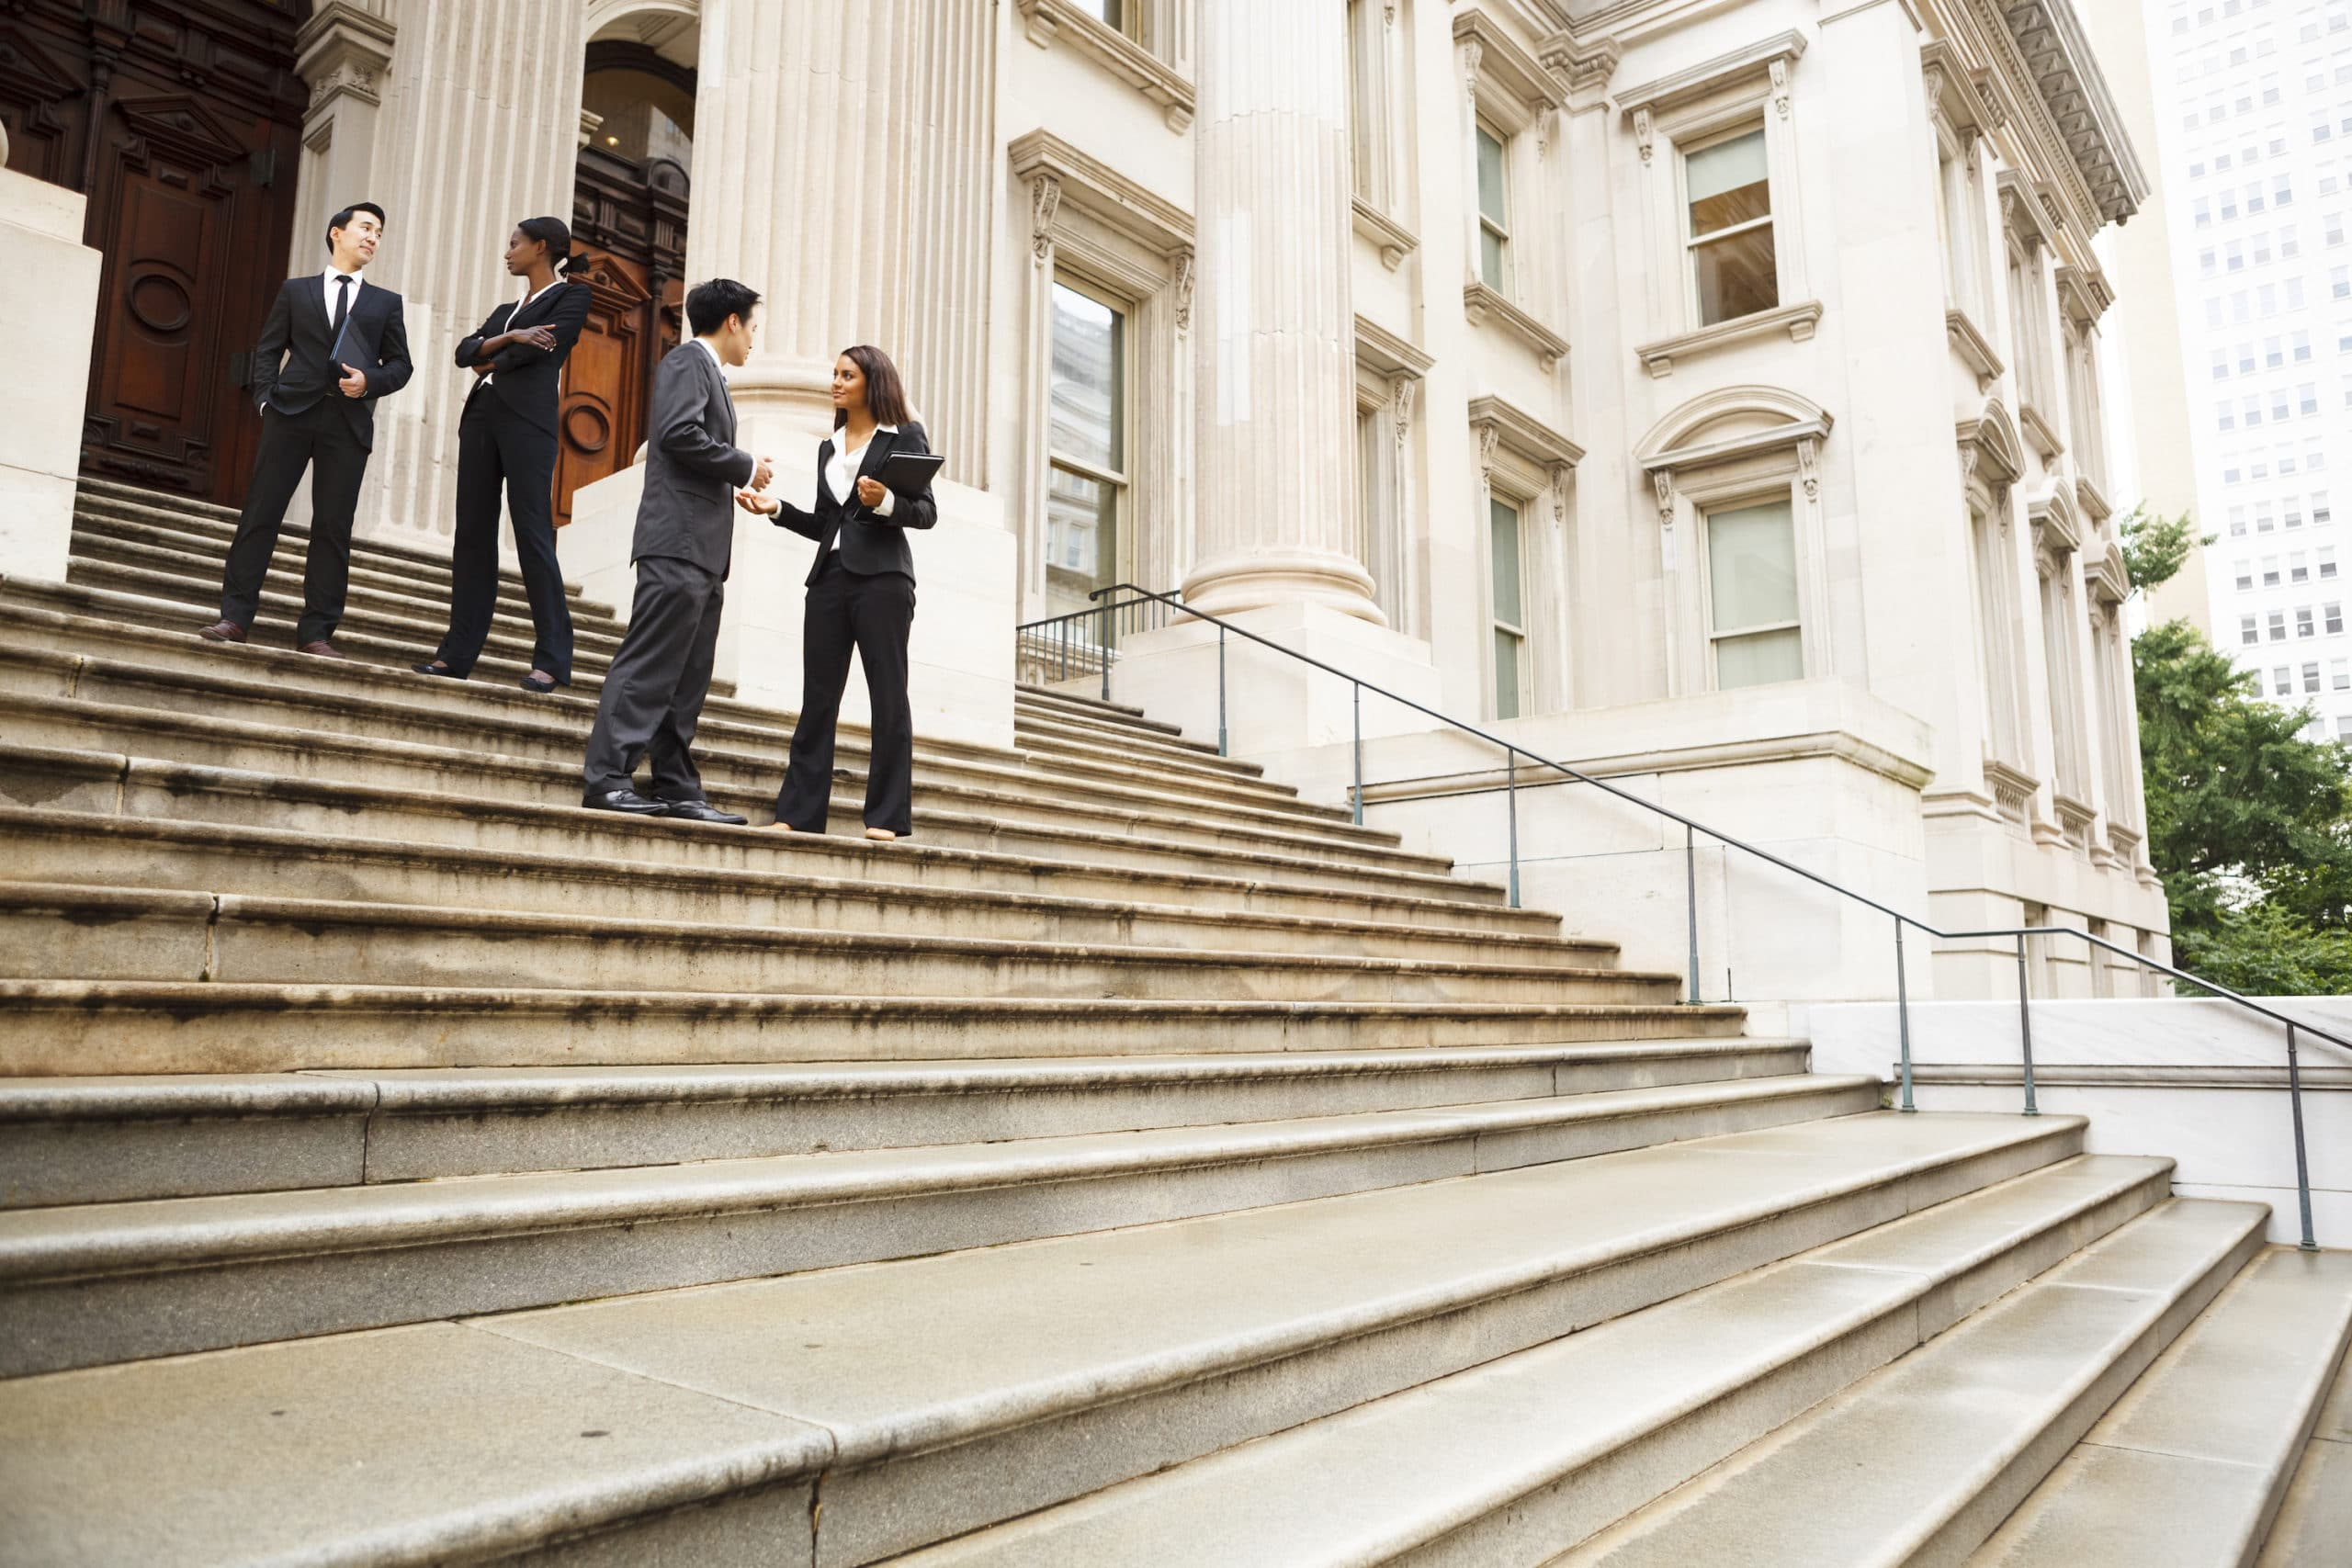 Appellate Lawyer concept. Four well dressed professionals in discussion on the exterior steps of a building. Could be lawyers, government workers, business people etc.